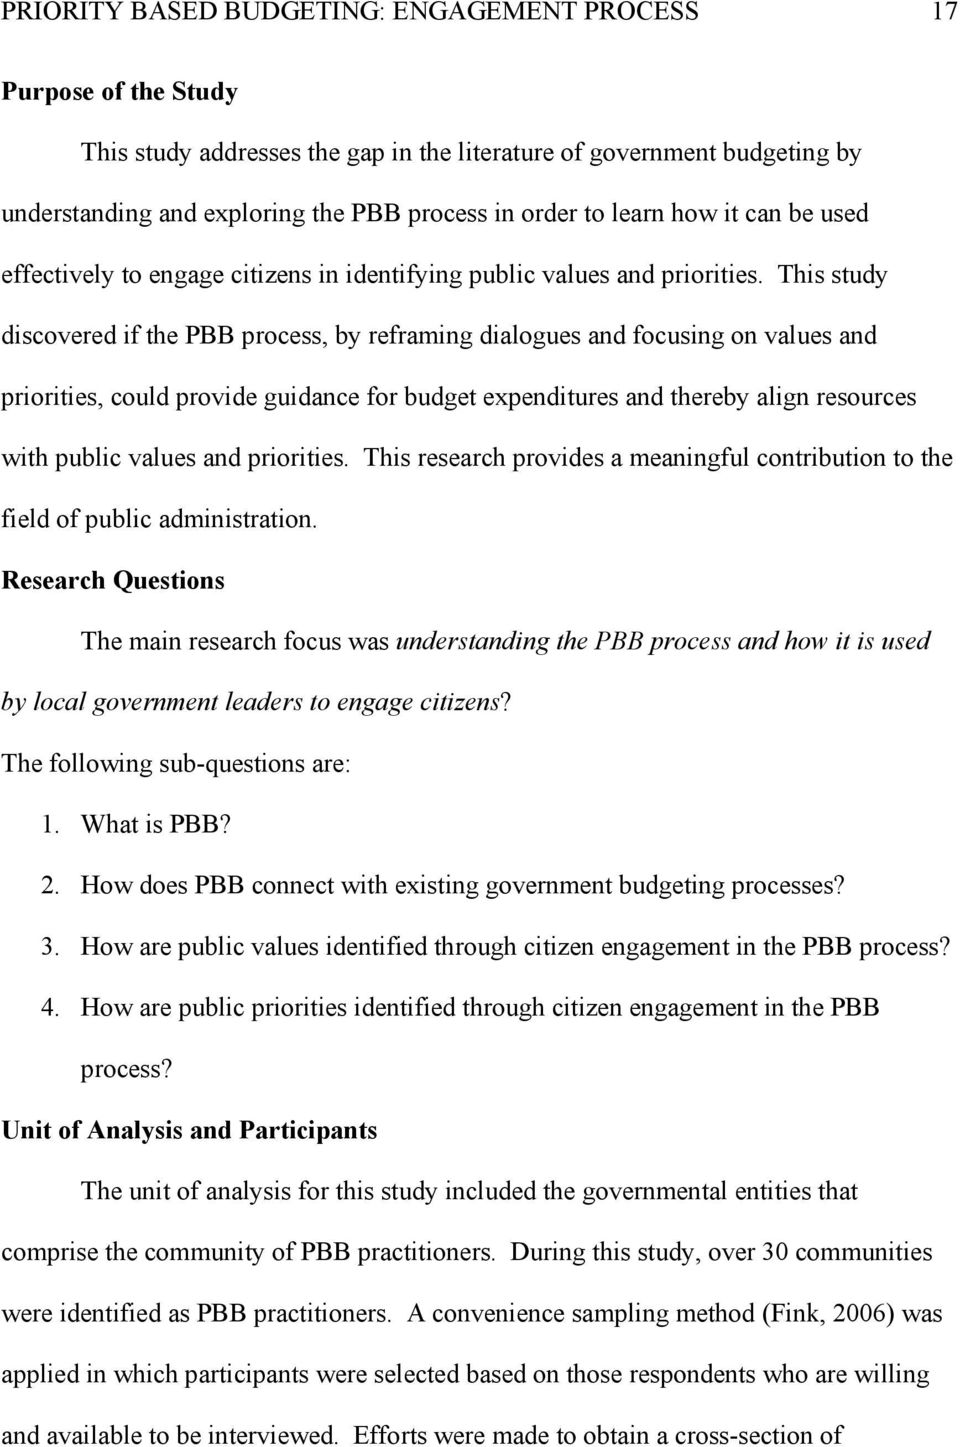 This study discovered if the PBB process, by reframing dialogues and focusing on values and priorities, could provide guidance for budget expenditures and thereby align resources with public values